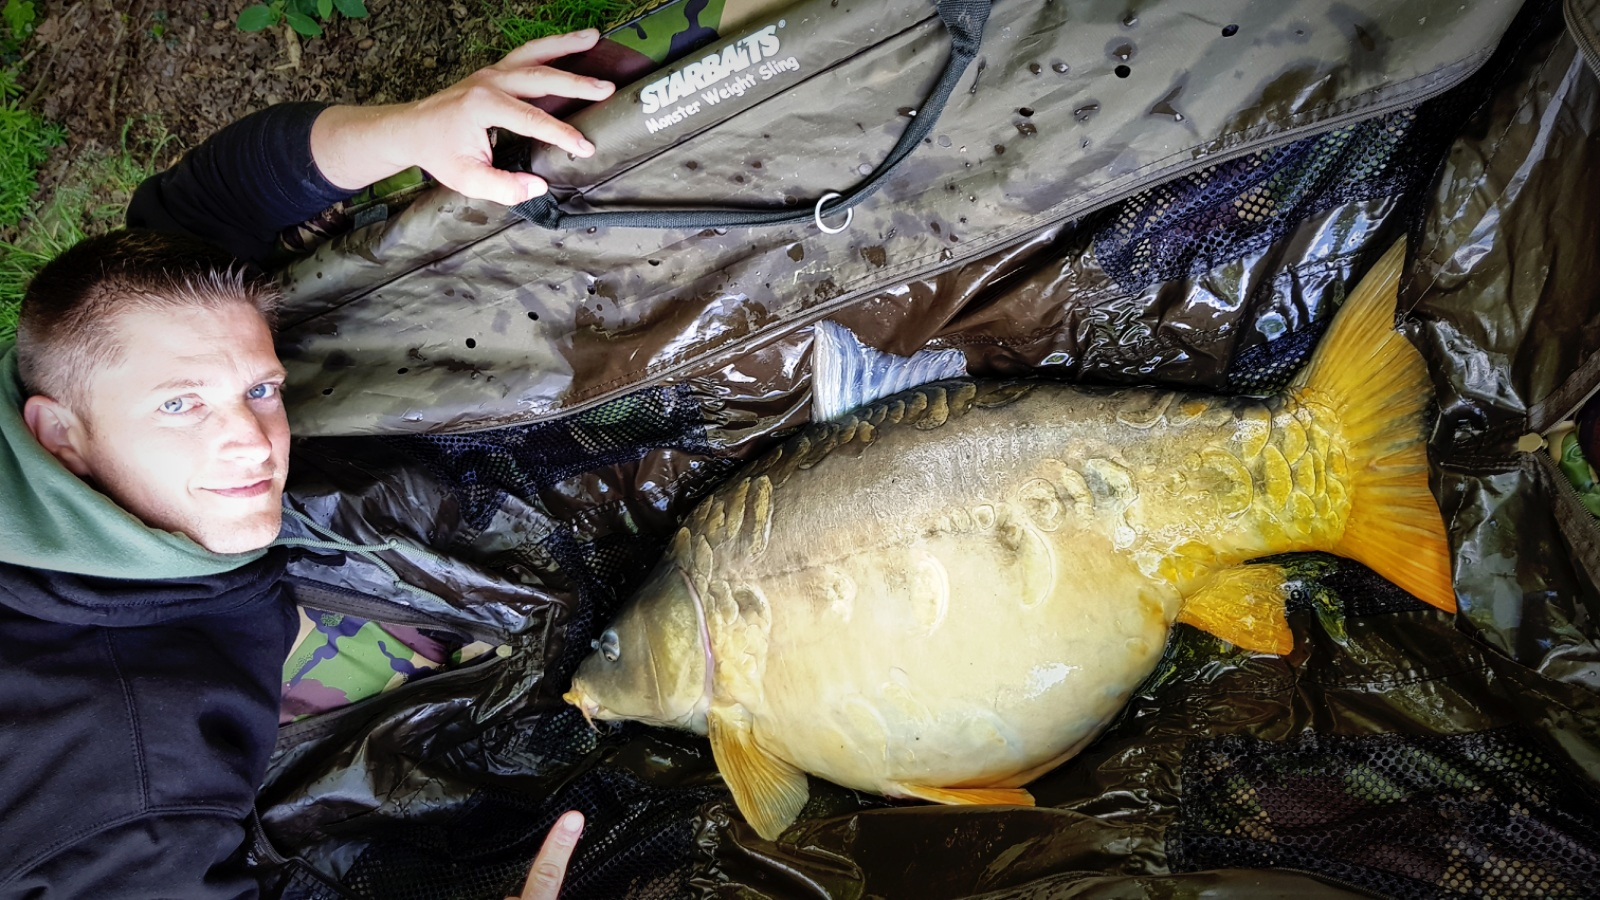 http://www.starbaits.com/fichiers/images/team/gallery/MARTIN_Greg/3.jpg